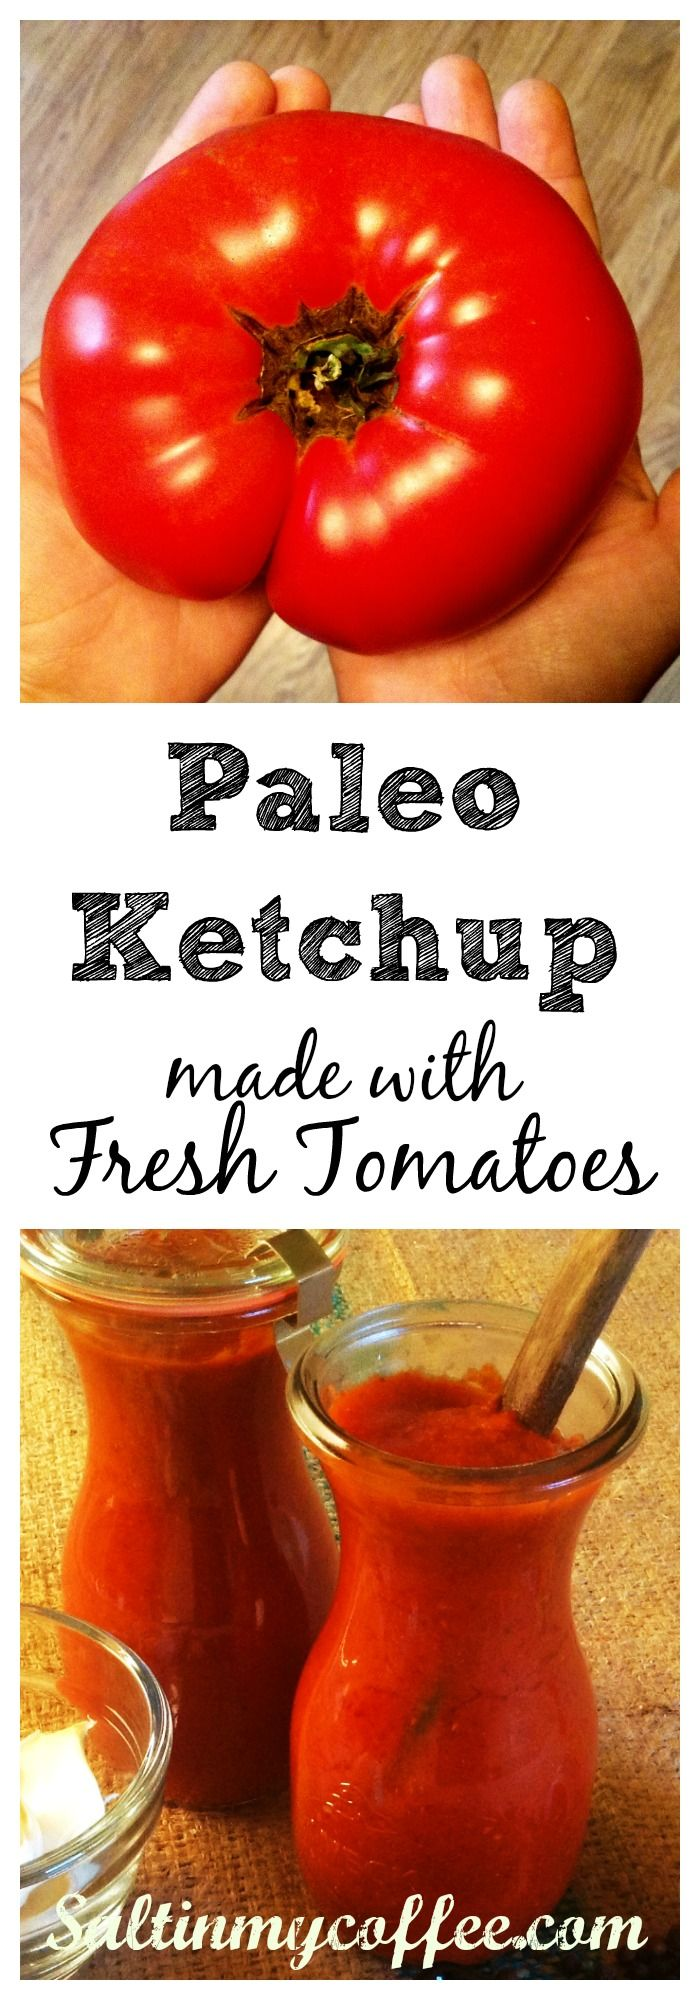 """A good authentic tasting ketchup recipe, using fresh tomatoes! You'll never miss the """"real"""" stuff!"""